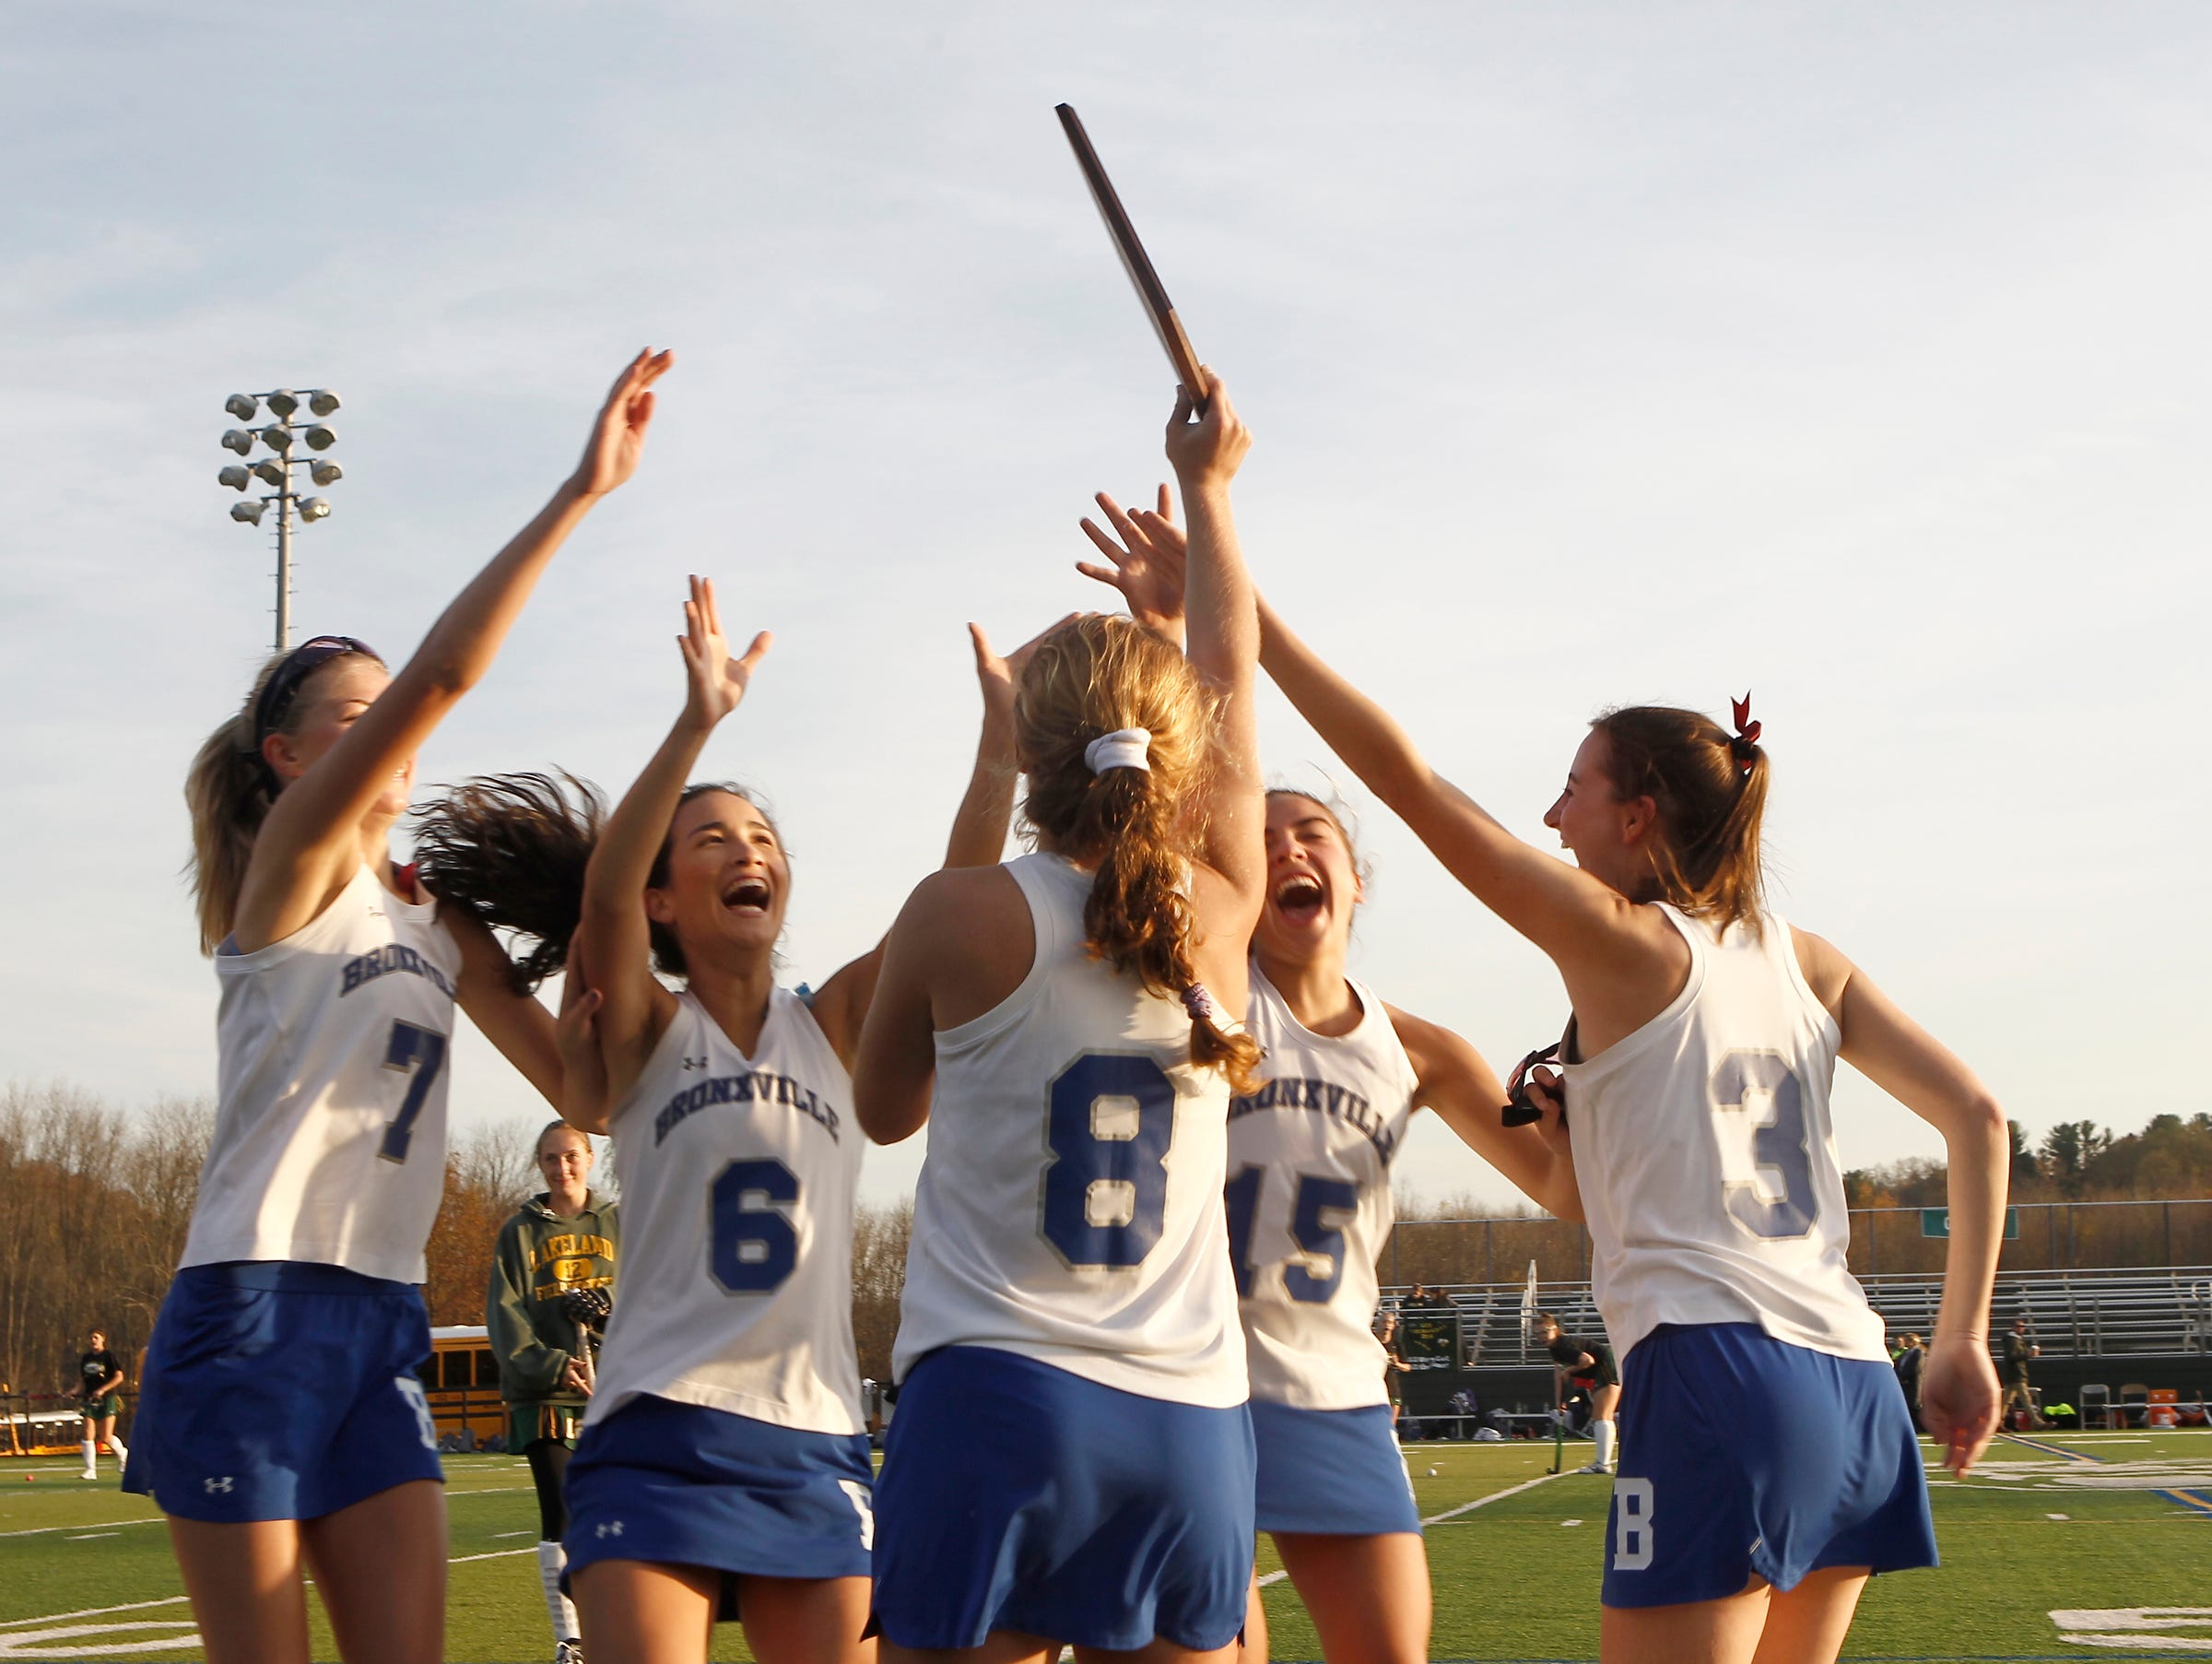 Bronxville's celebrates their 7-1 win over Croton in the Class C field hockey sectiion finals at Brewster High School on Tuesday, November 1, 2016.